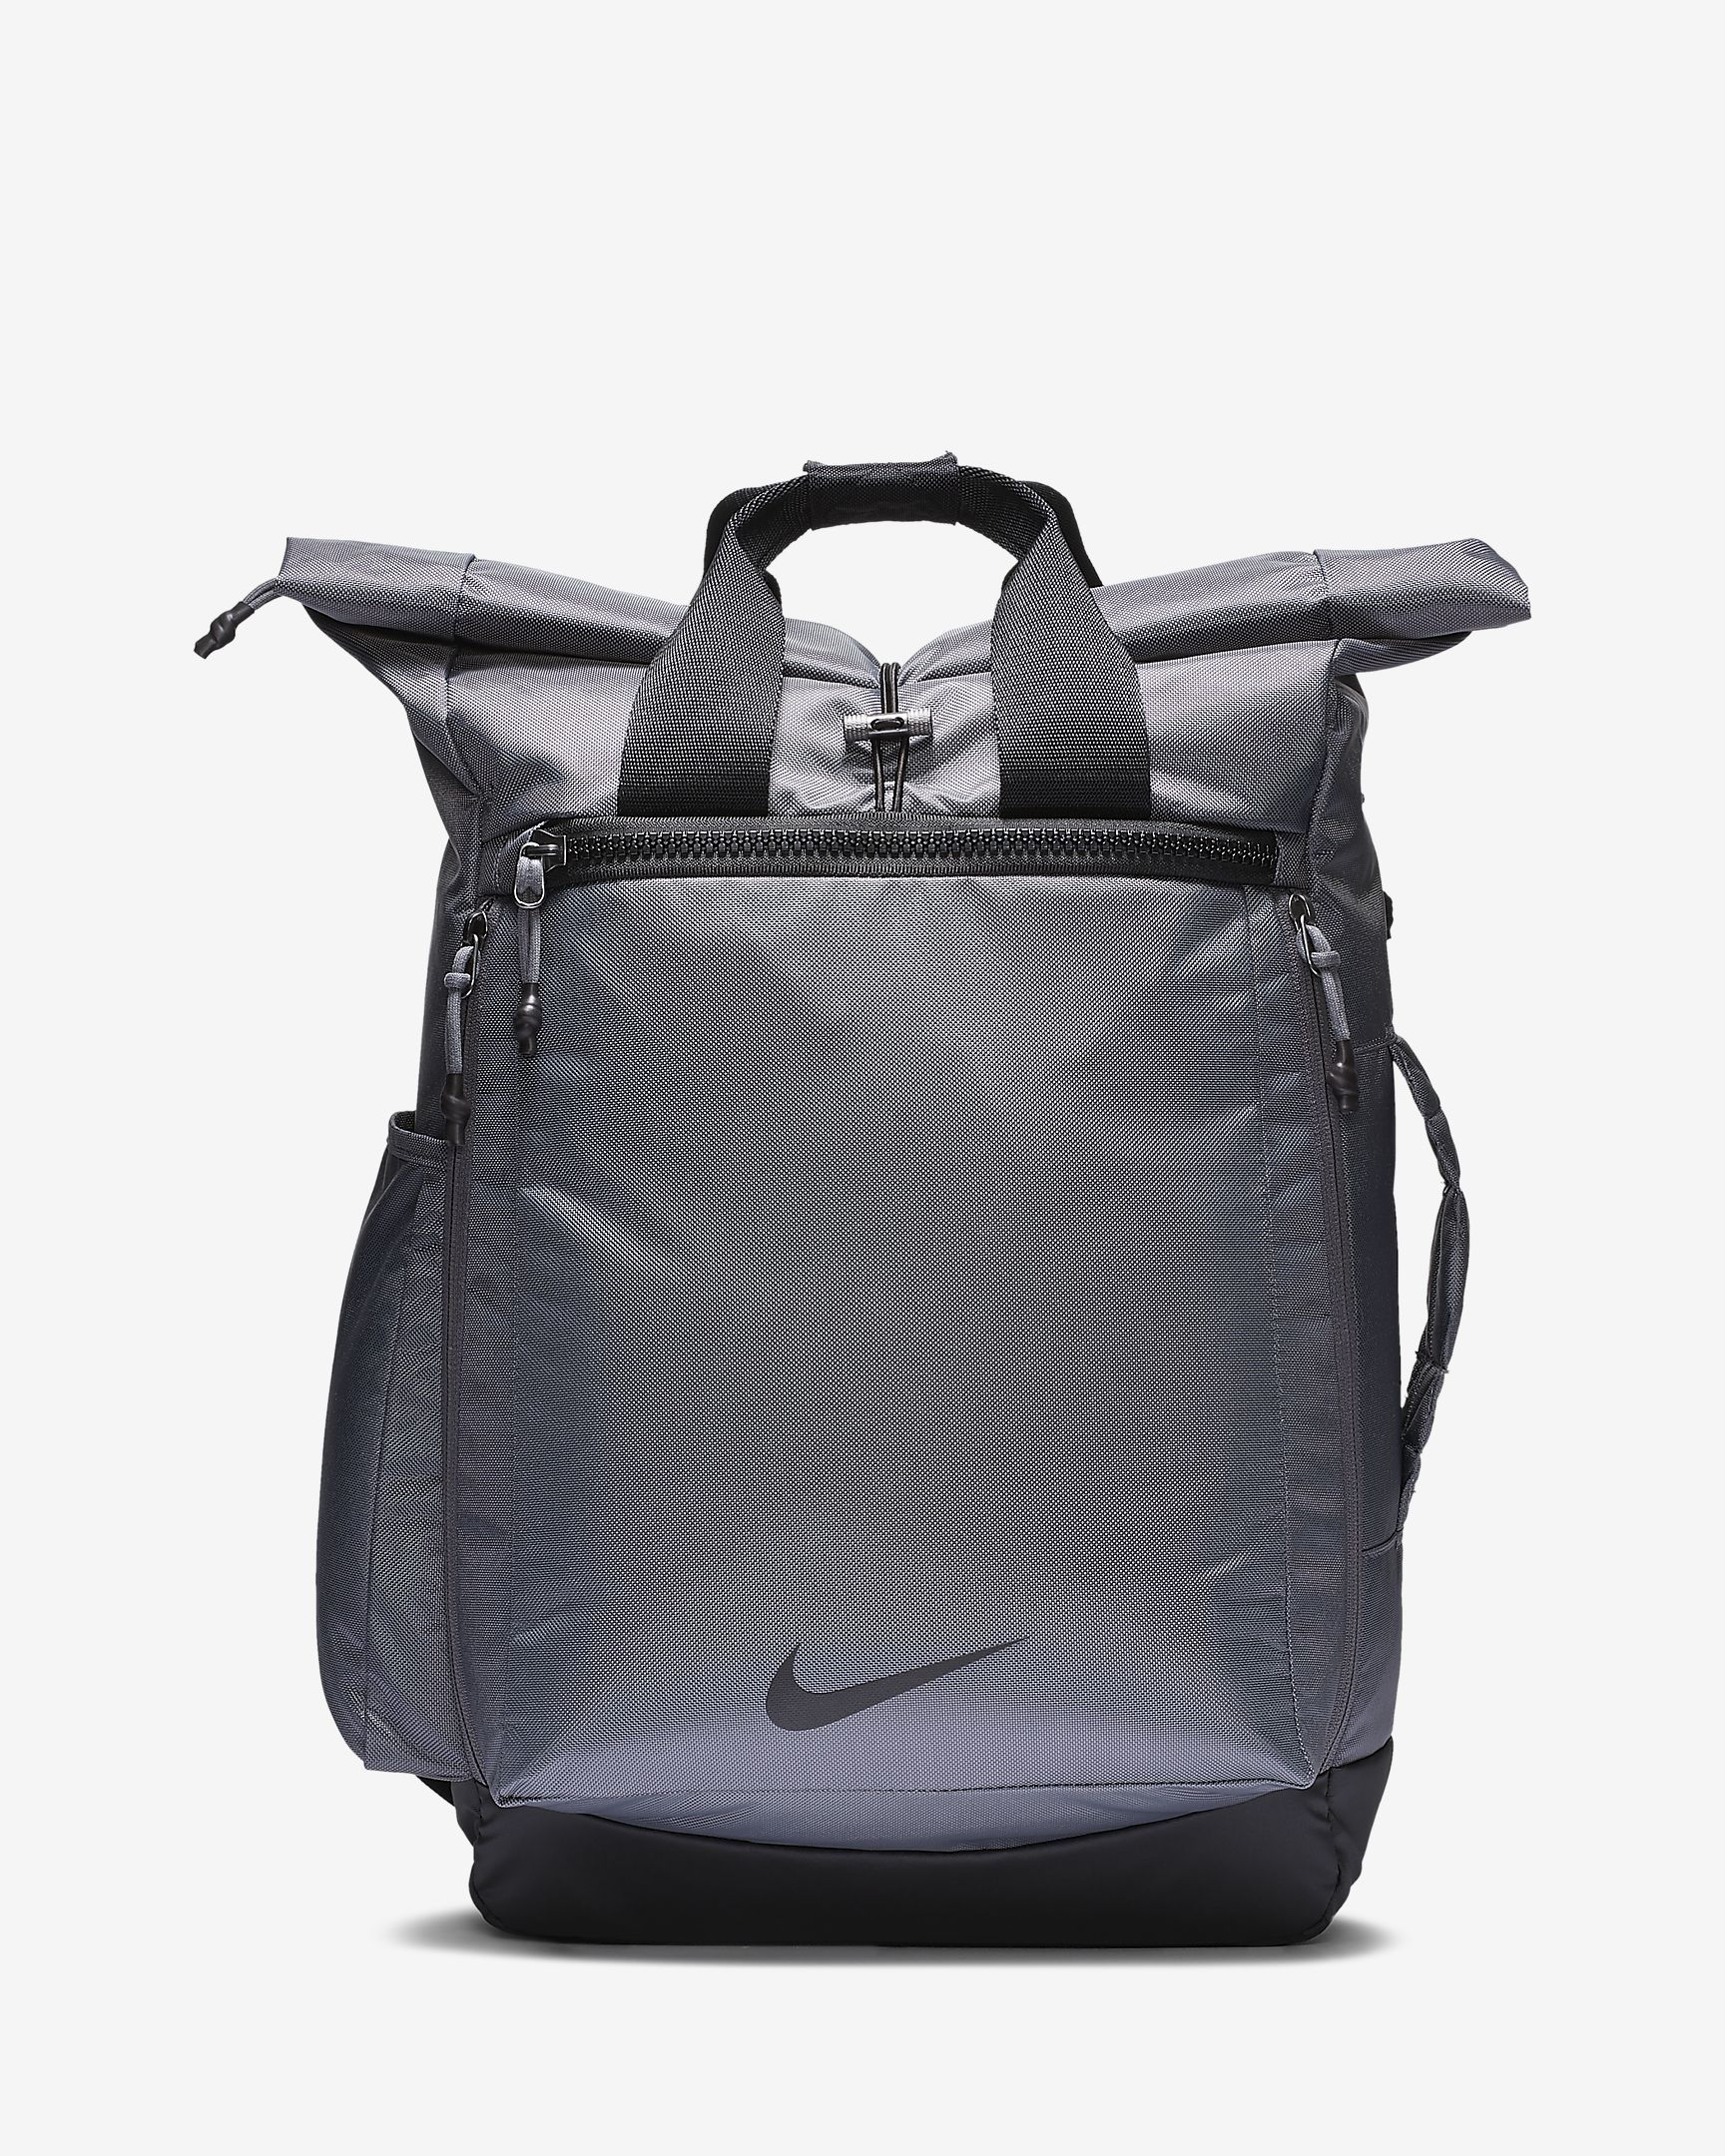 1337d2575f8d Nike Training Backpack Vapor Energy 2.0